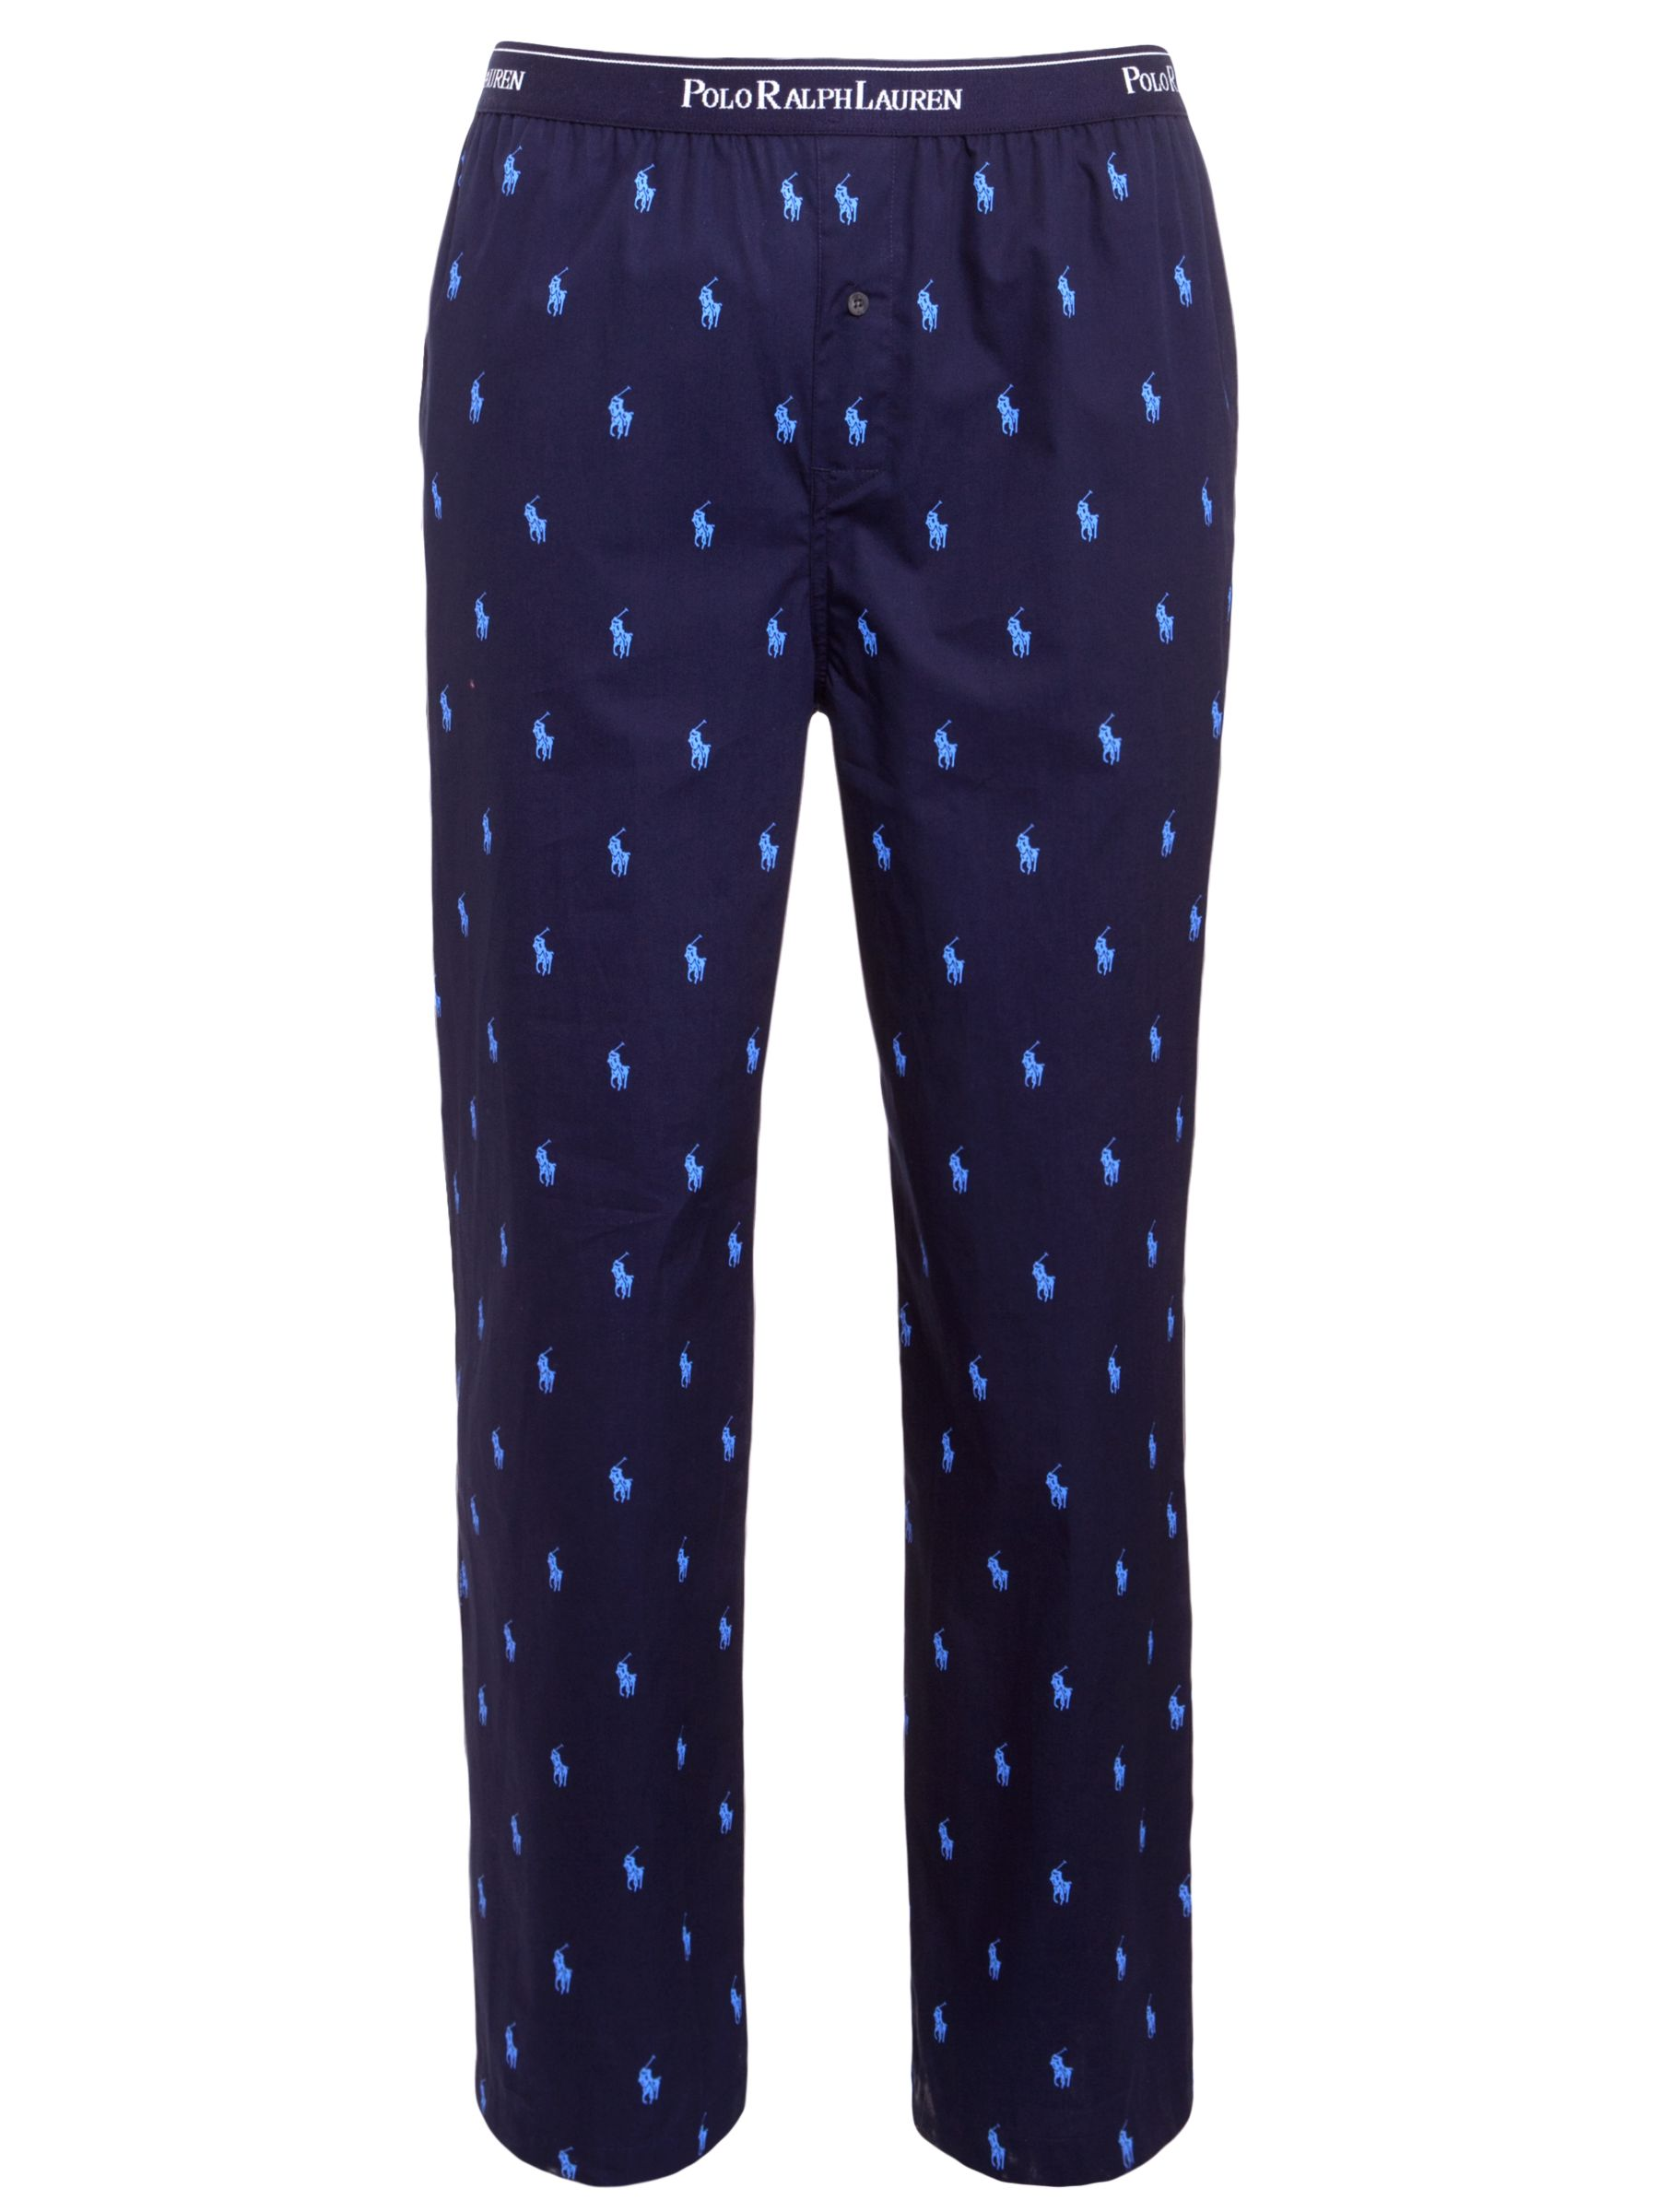 Polo Ralph Lauren Pony Lounge Pants